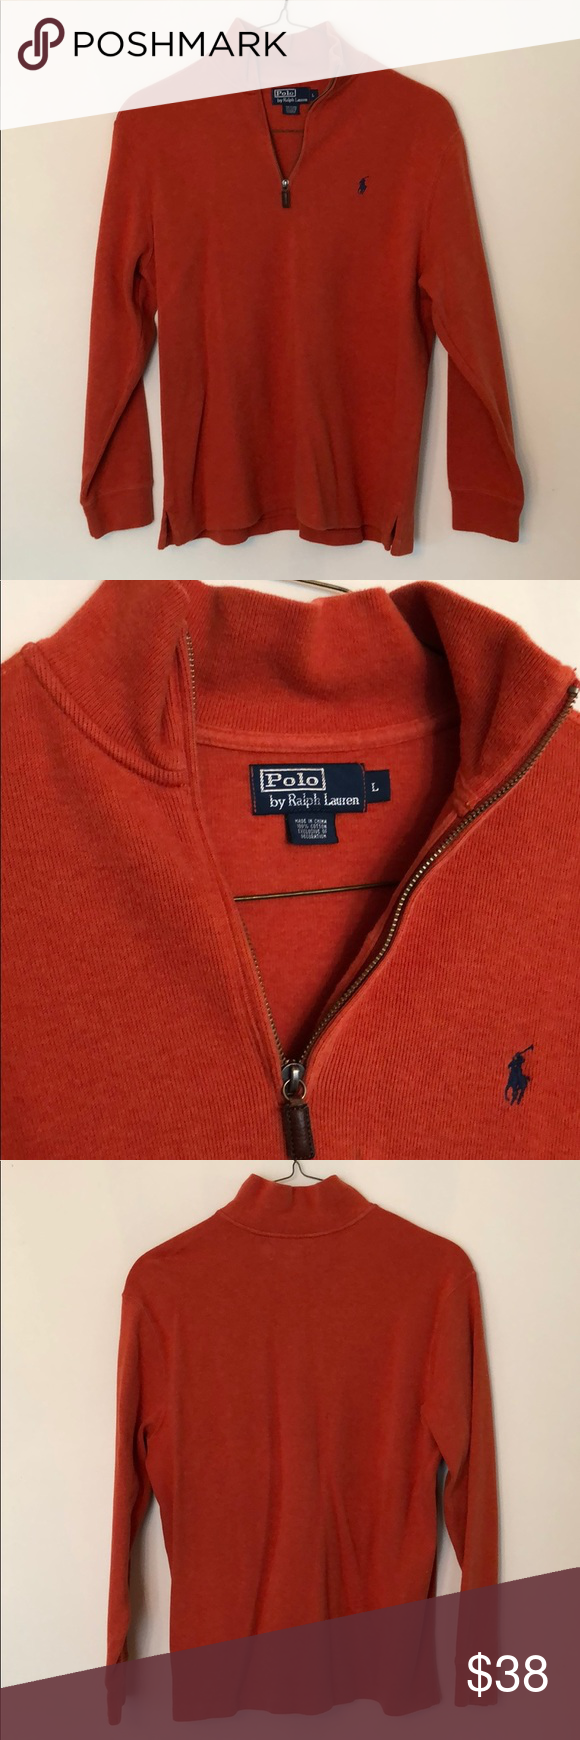 Mens Large Polo By Ralph Lauren Pullover 1 4 Zip A Burnt Orange Colored Polo By Ralph Lauren Pullover Sweatshi Ralph Lauren Pullover Polo Ralph Lauren Pullover [ 1740 x 580 Pixel ]